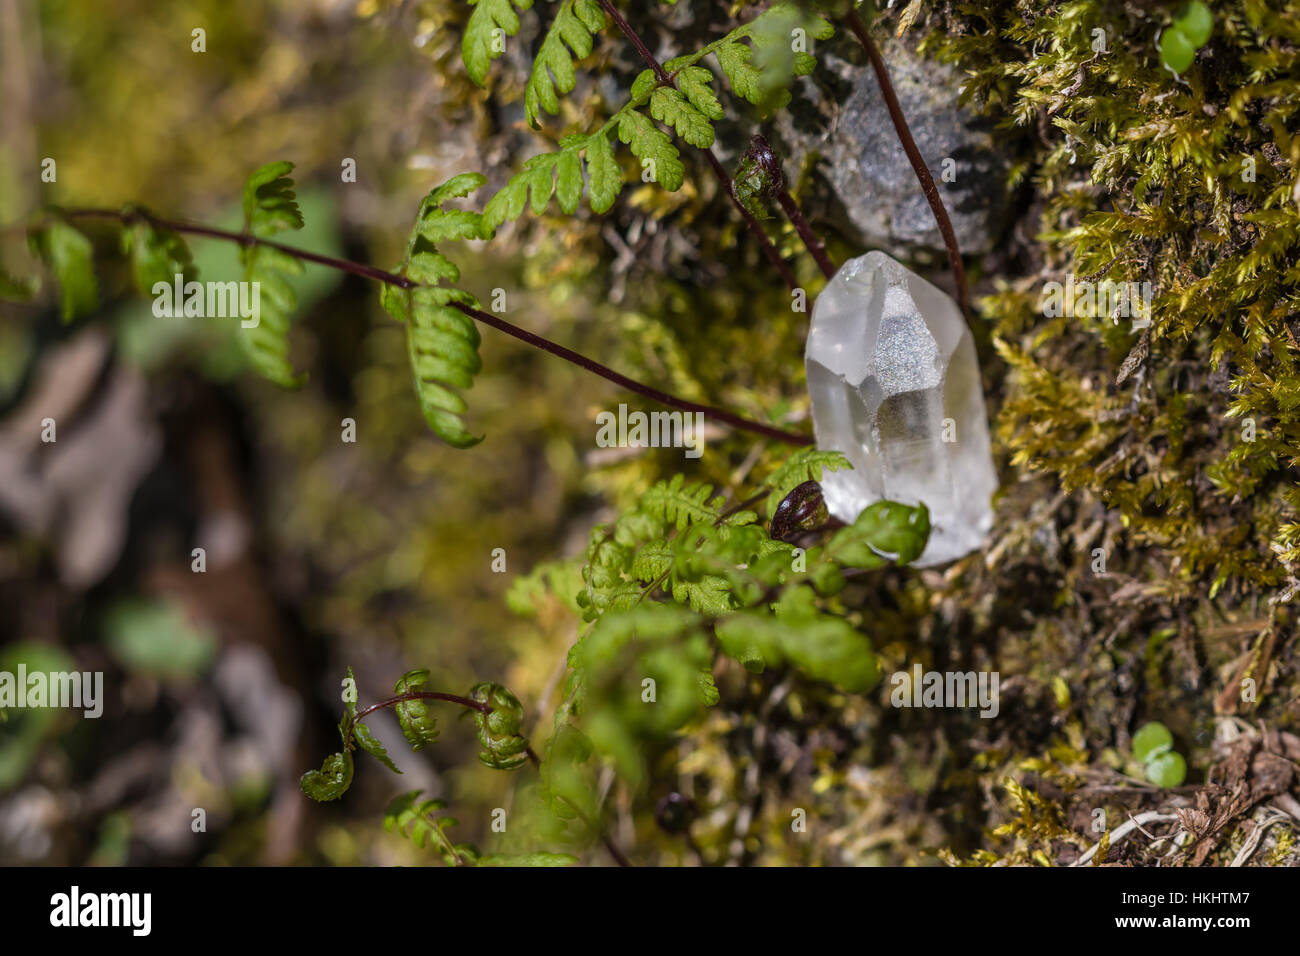 Clear Quartz crystal found among moss and ferns in forest at Great Serpent Mound in Adams County, Ohio, USA Stock Photo